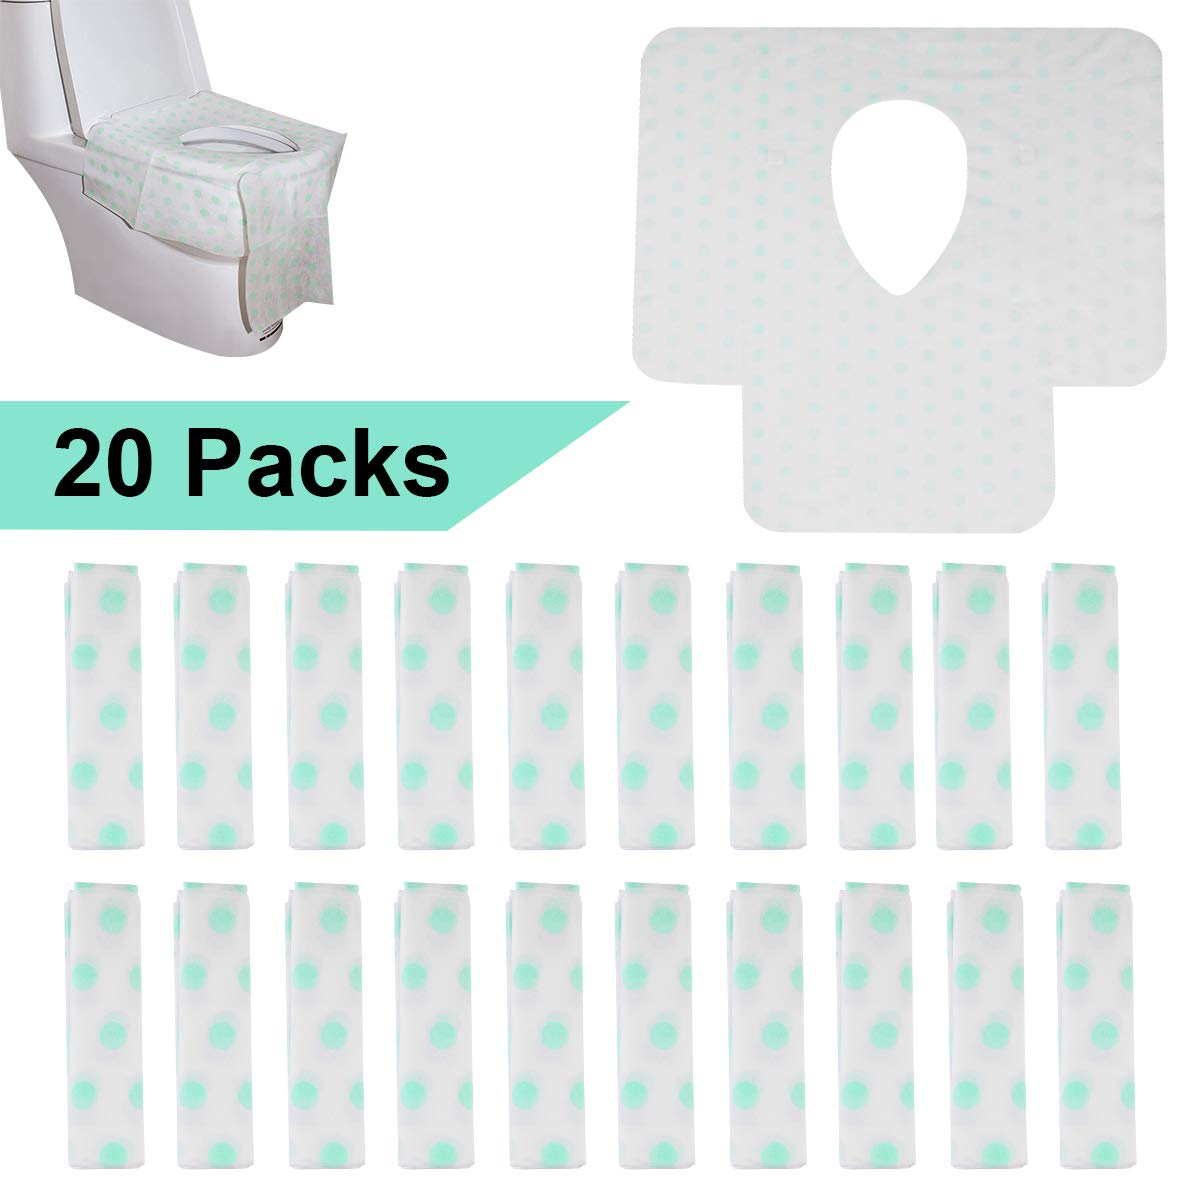 Disposable Toilet Seat Covers-Extra Large Size Non Slip Travel Portable Toilet Potty Training Seat Covers,for Both Kids and Adults (20 Pack)